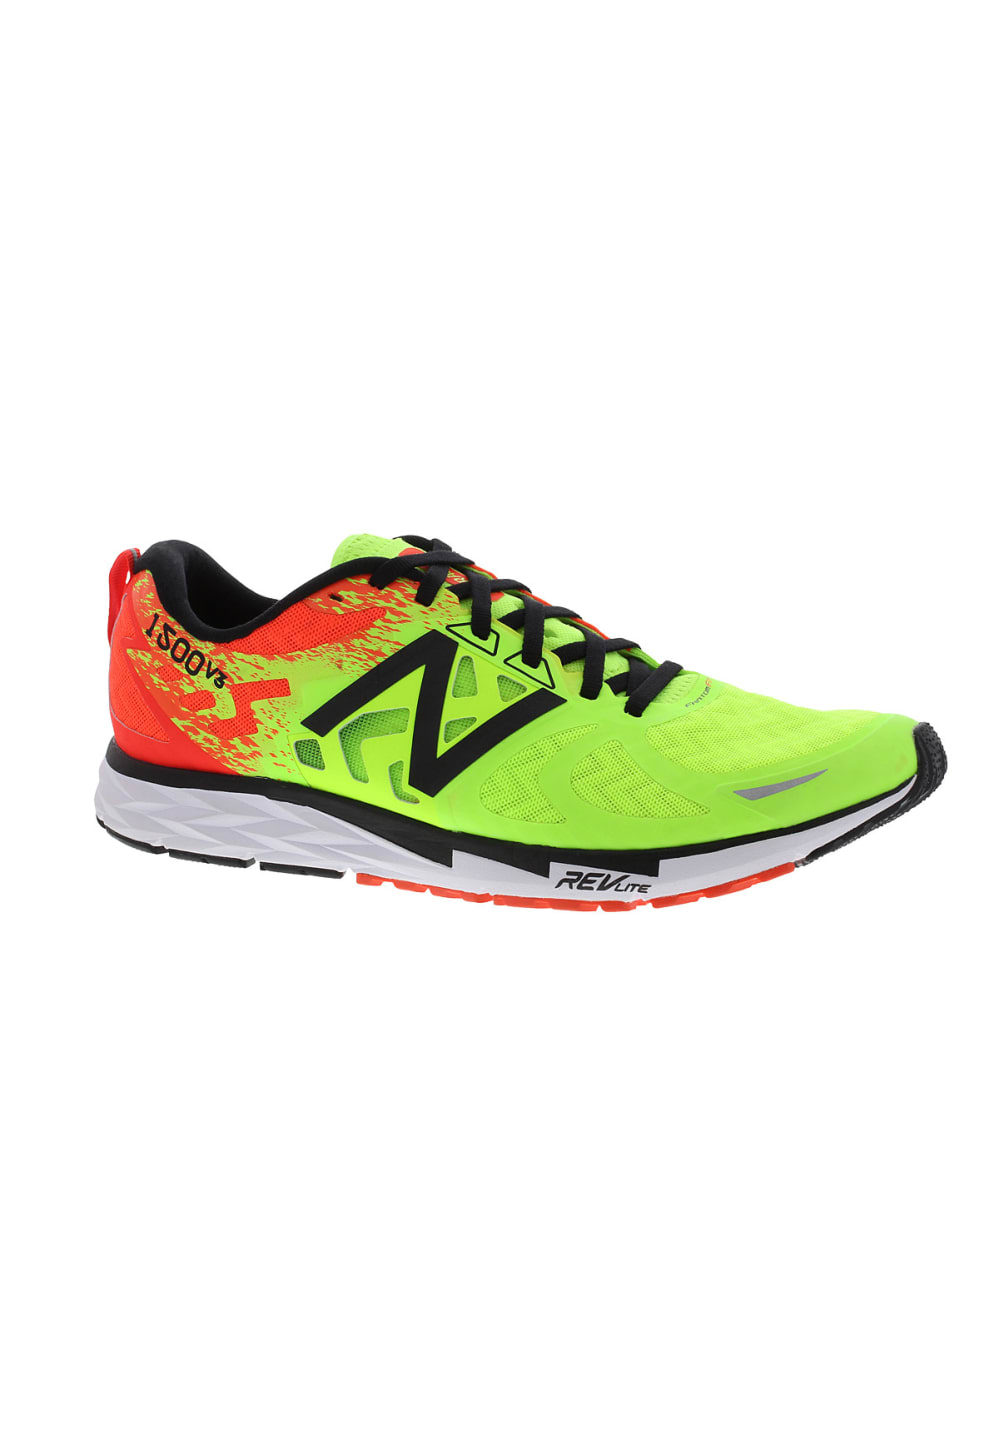 new concept 9ee22 12202 New Balance M 1500 D V3 - Running shoes for Men - Green